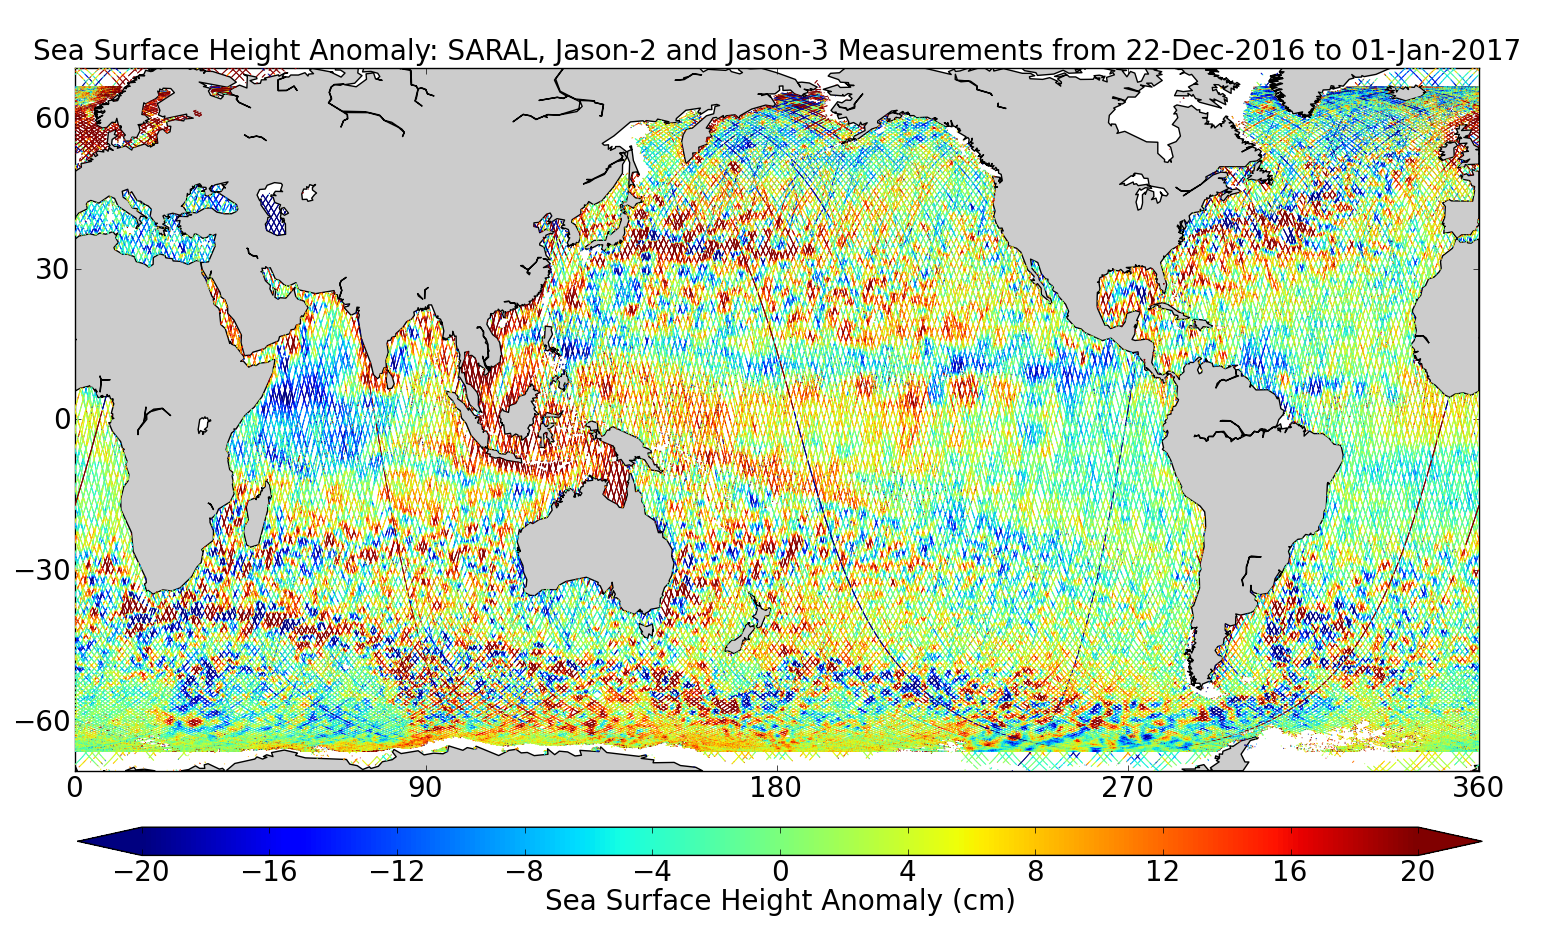 Sea Surface Height Anomaly: SARAL, Jason-2 and Jason-3 Measurements from 22-Dec-2016 to 01-Jan-2017